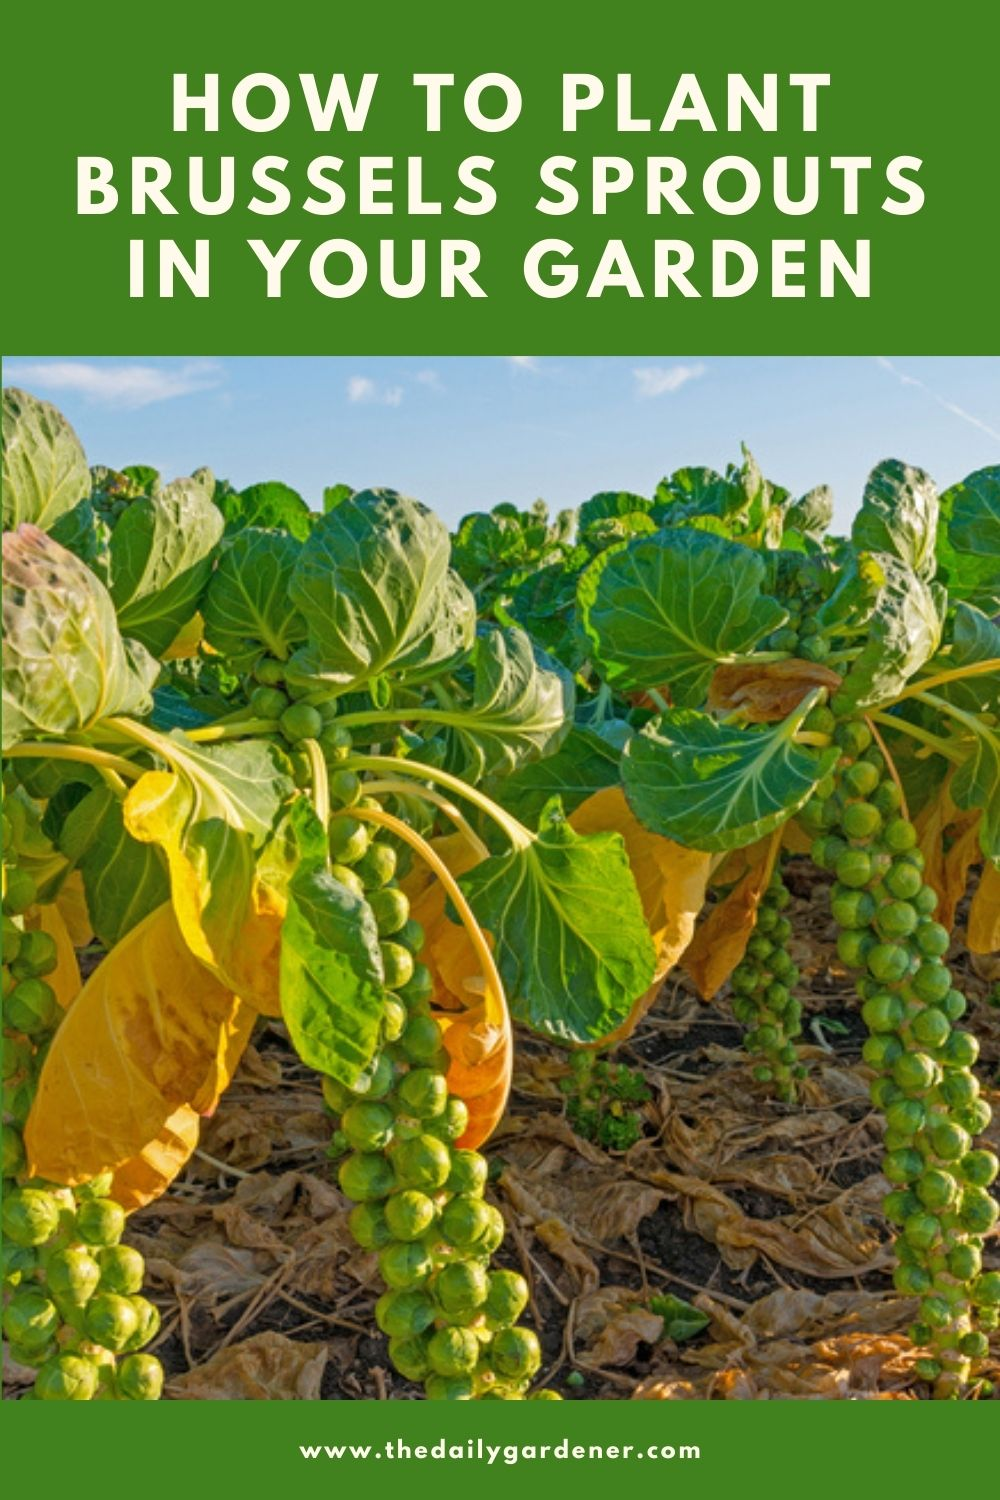 How to Plant Brussels Sprouts in Your Garden (Tricks to Care!) 2